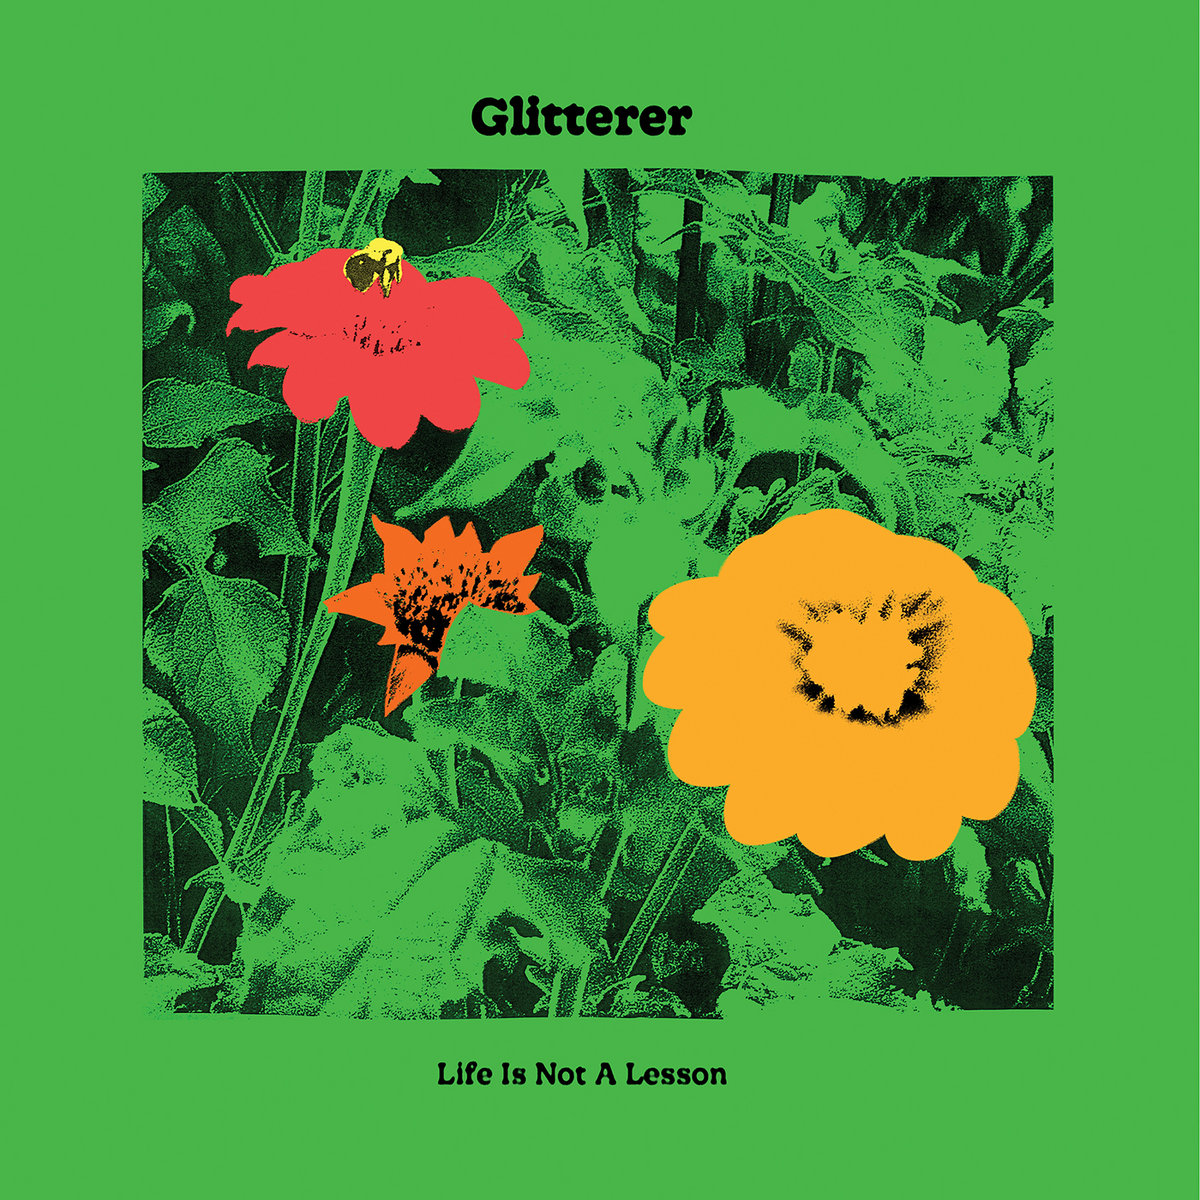 Glitterer: Life Is Not A Lesson [Album Review]